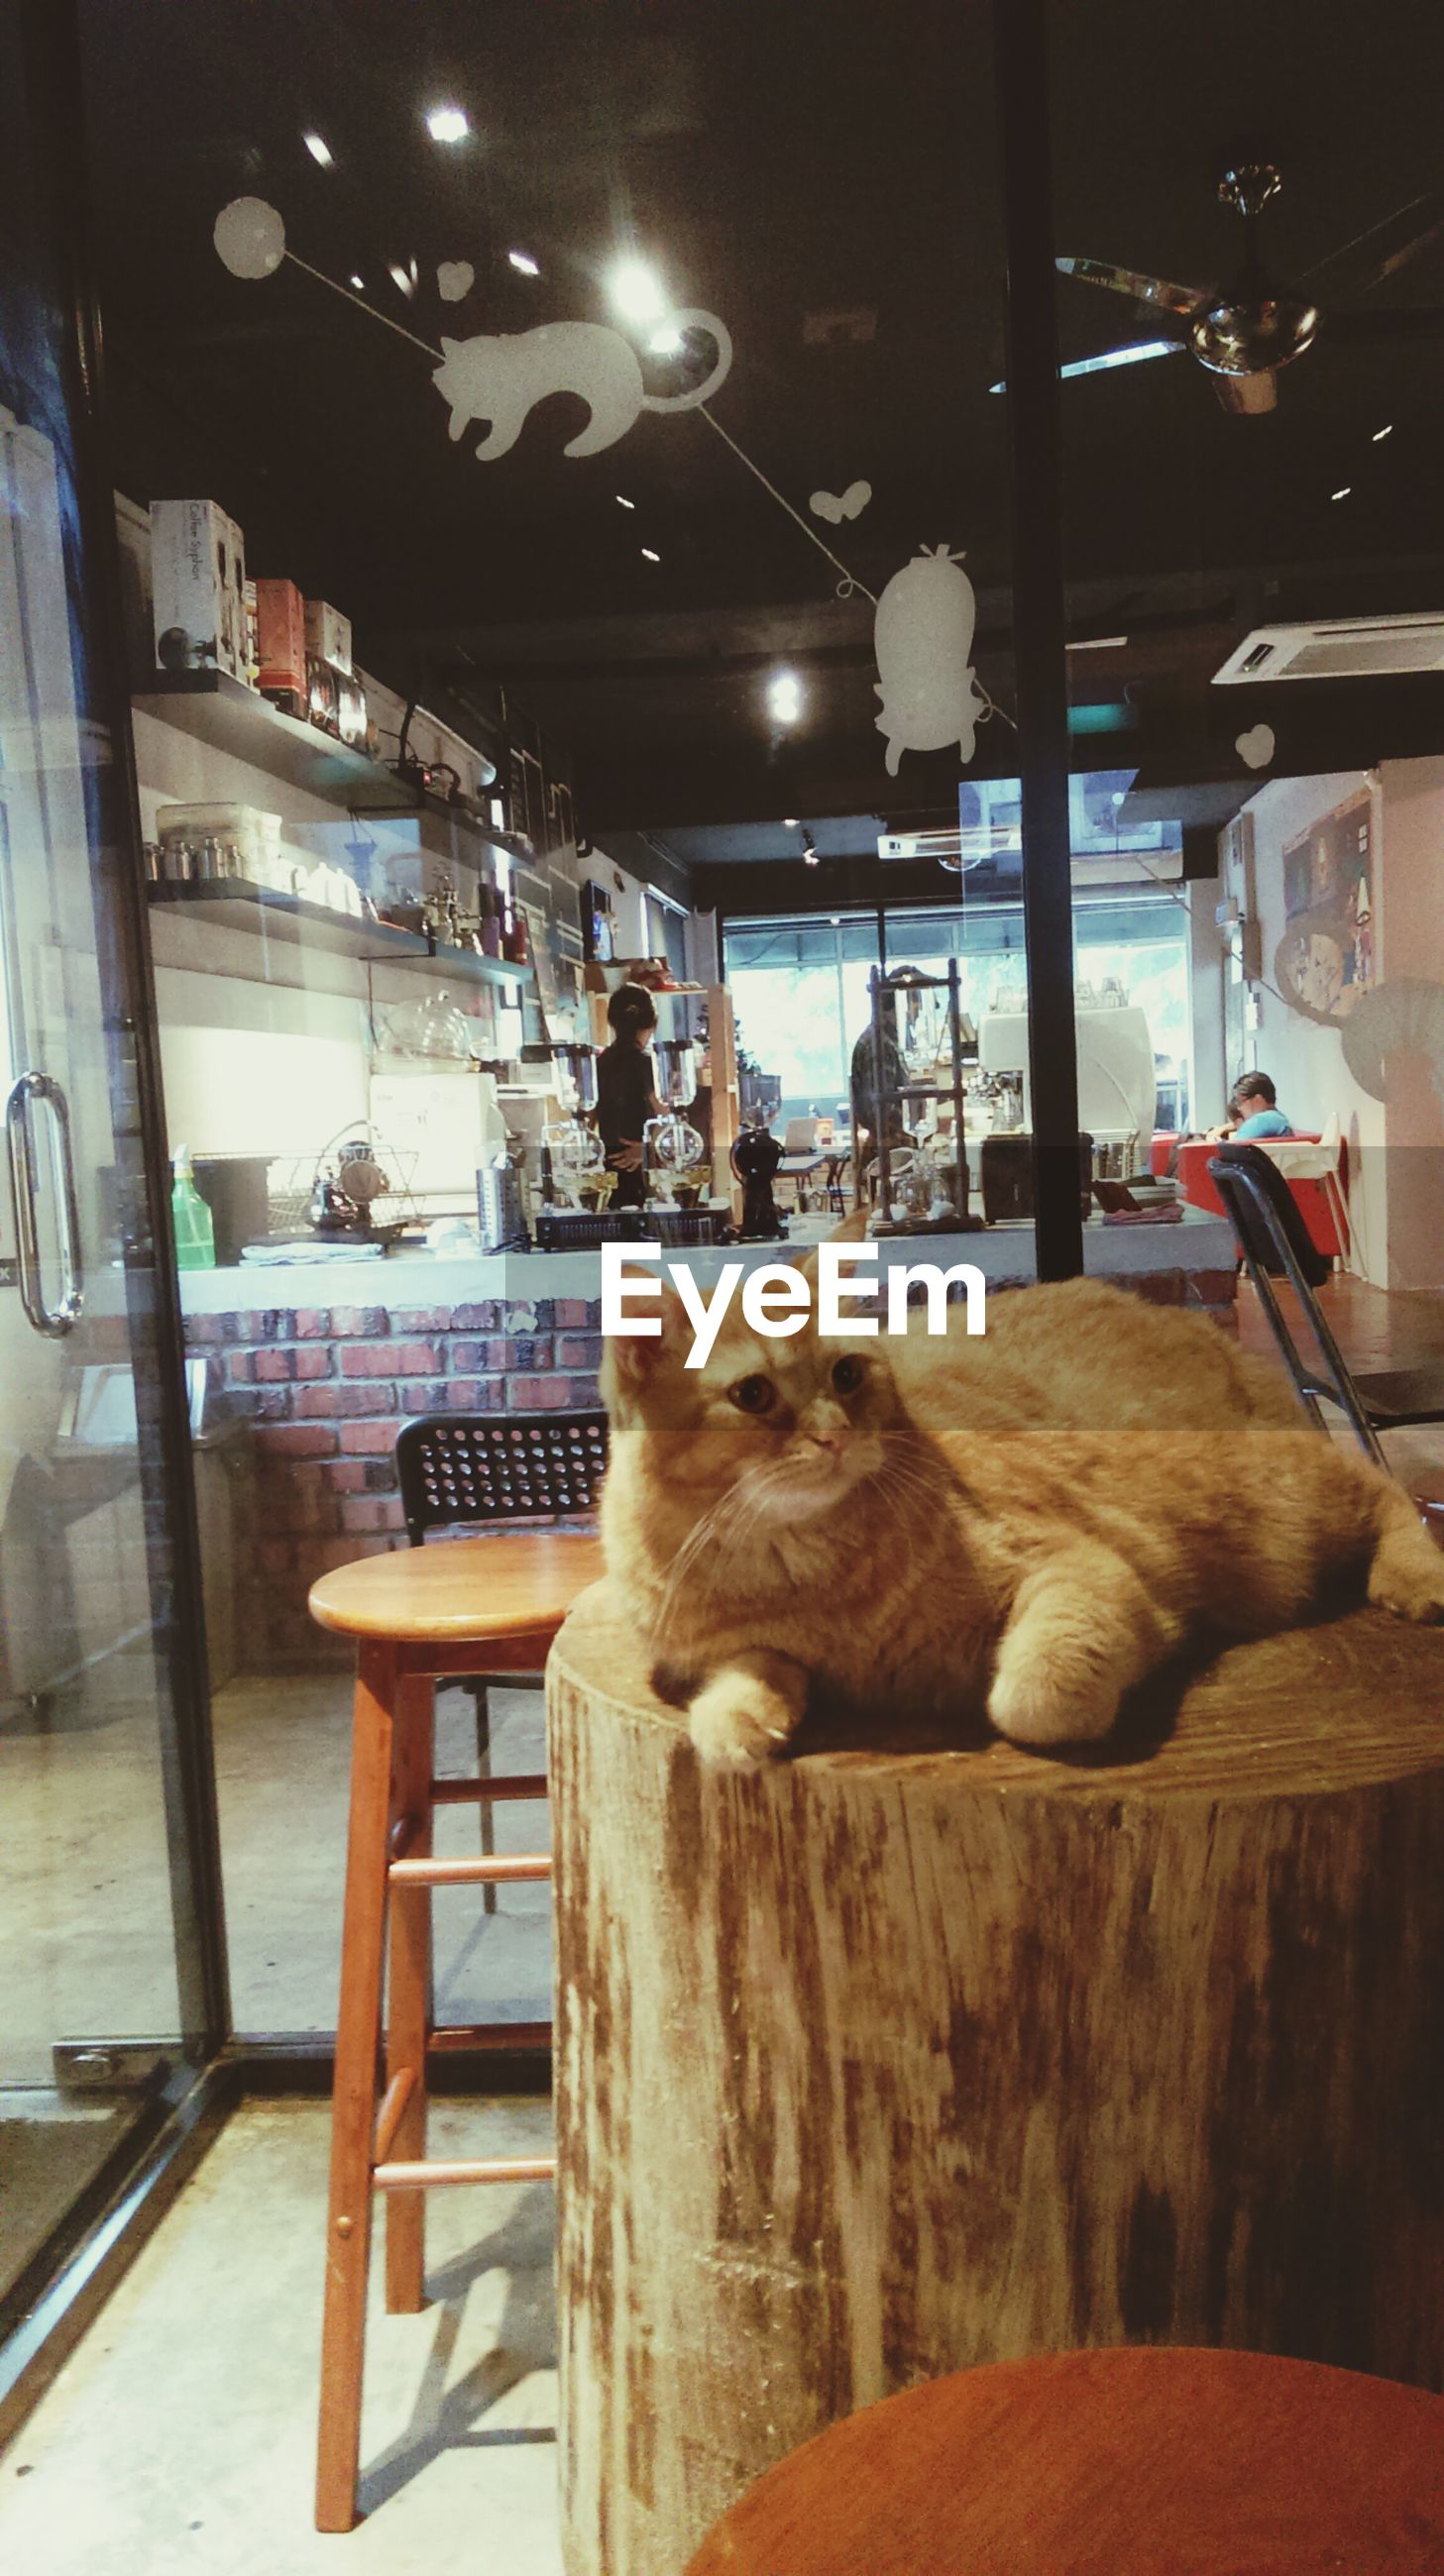 pets, domestic animals, animal themes, indoors, mammal, one animal, sitting, chair, table, domestic cat, relaxation, dog, night, window, illuminated, restaurant, home interior, incidental people, cat, glass - material